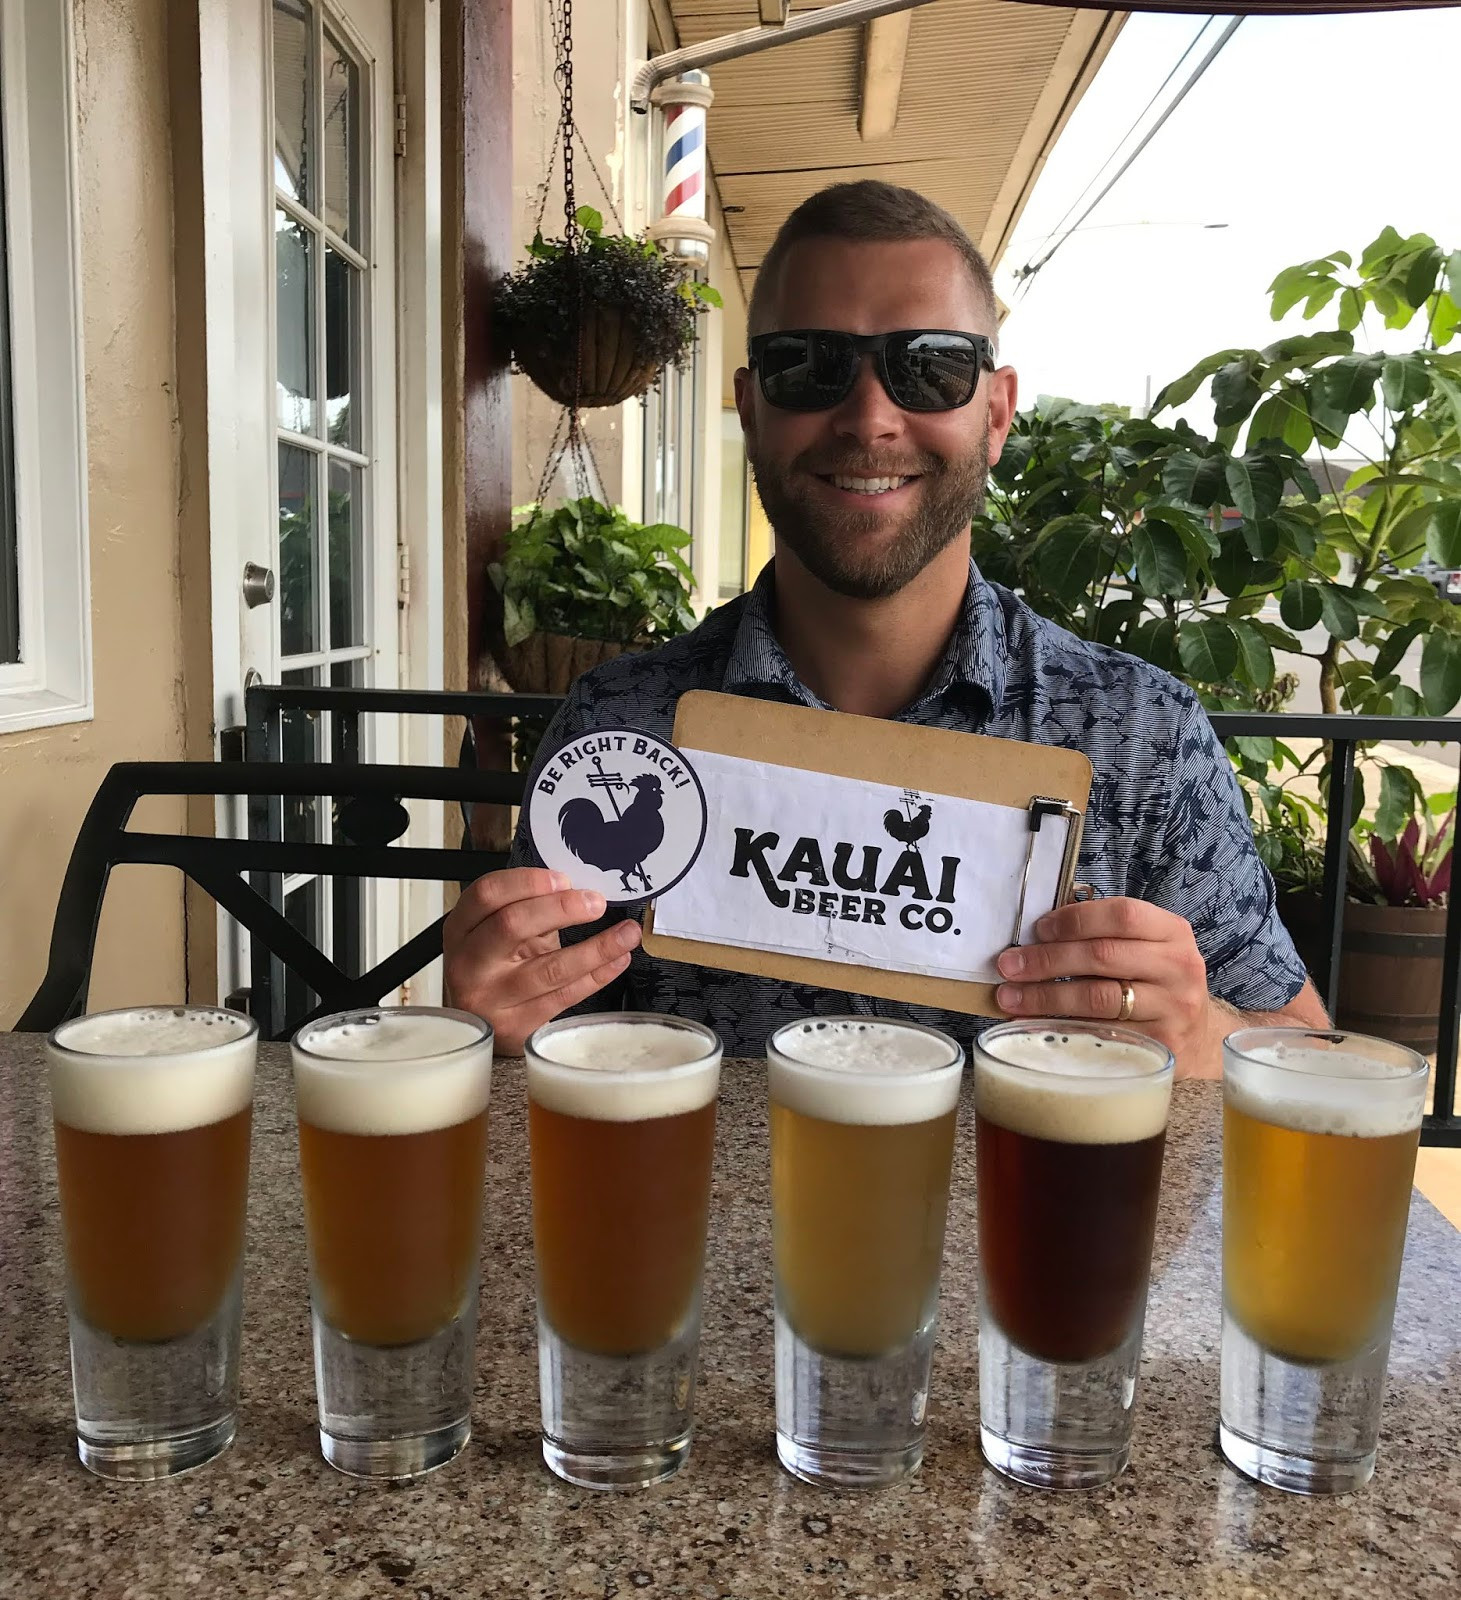 Kauai Beer Company | Breweries in Kauai | Itinerary for Kauai Trip | A Memory of Us